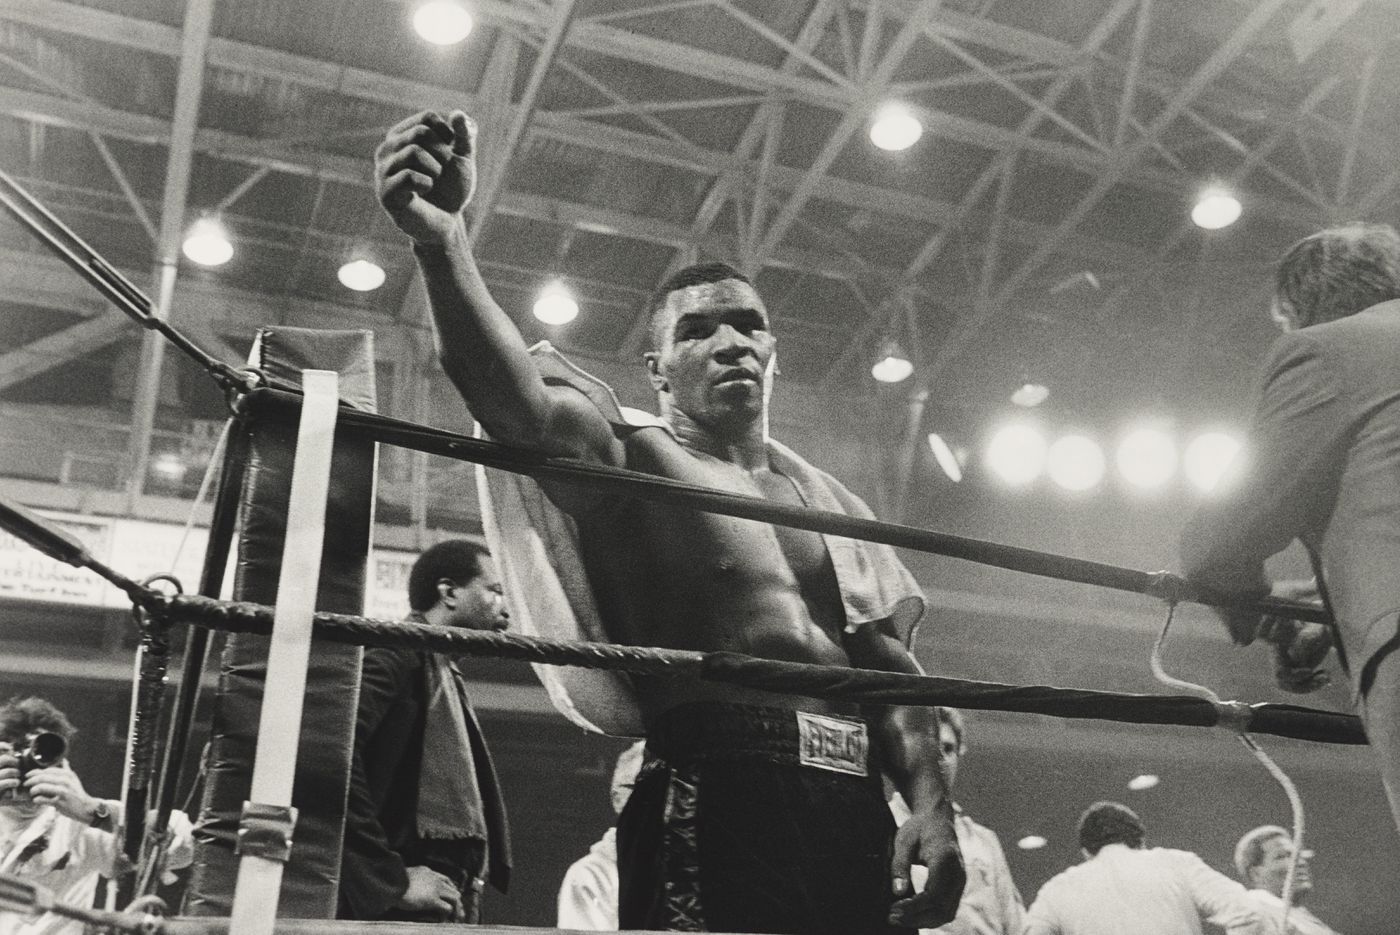 Philly's boxing culture becomes works of art in new exhibit from famed photographer